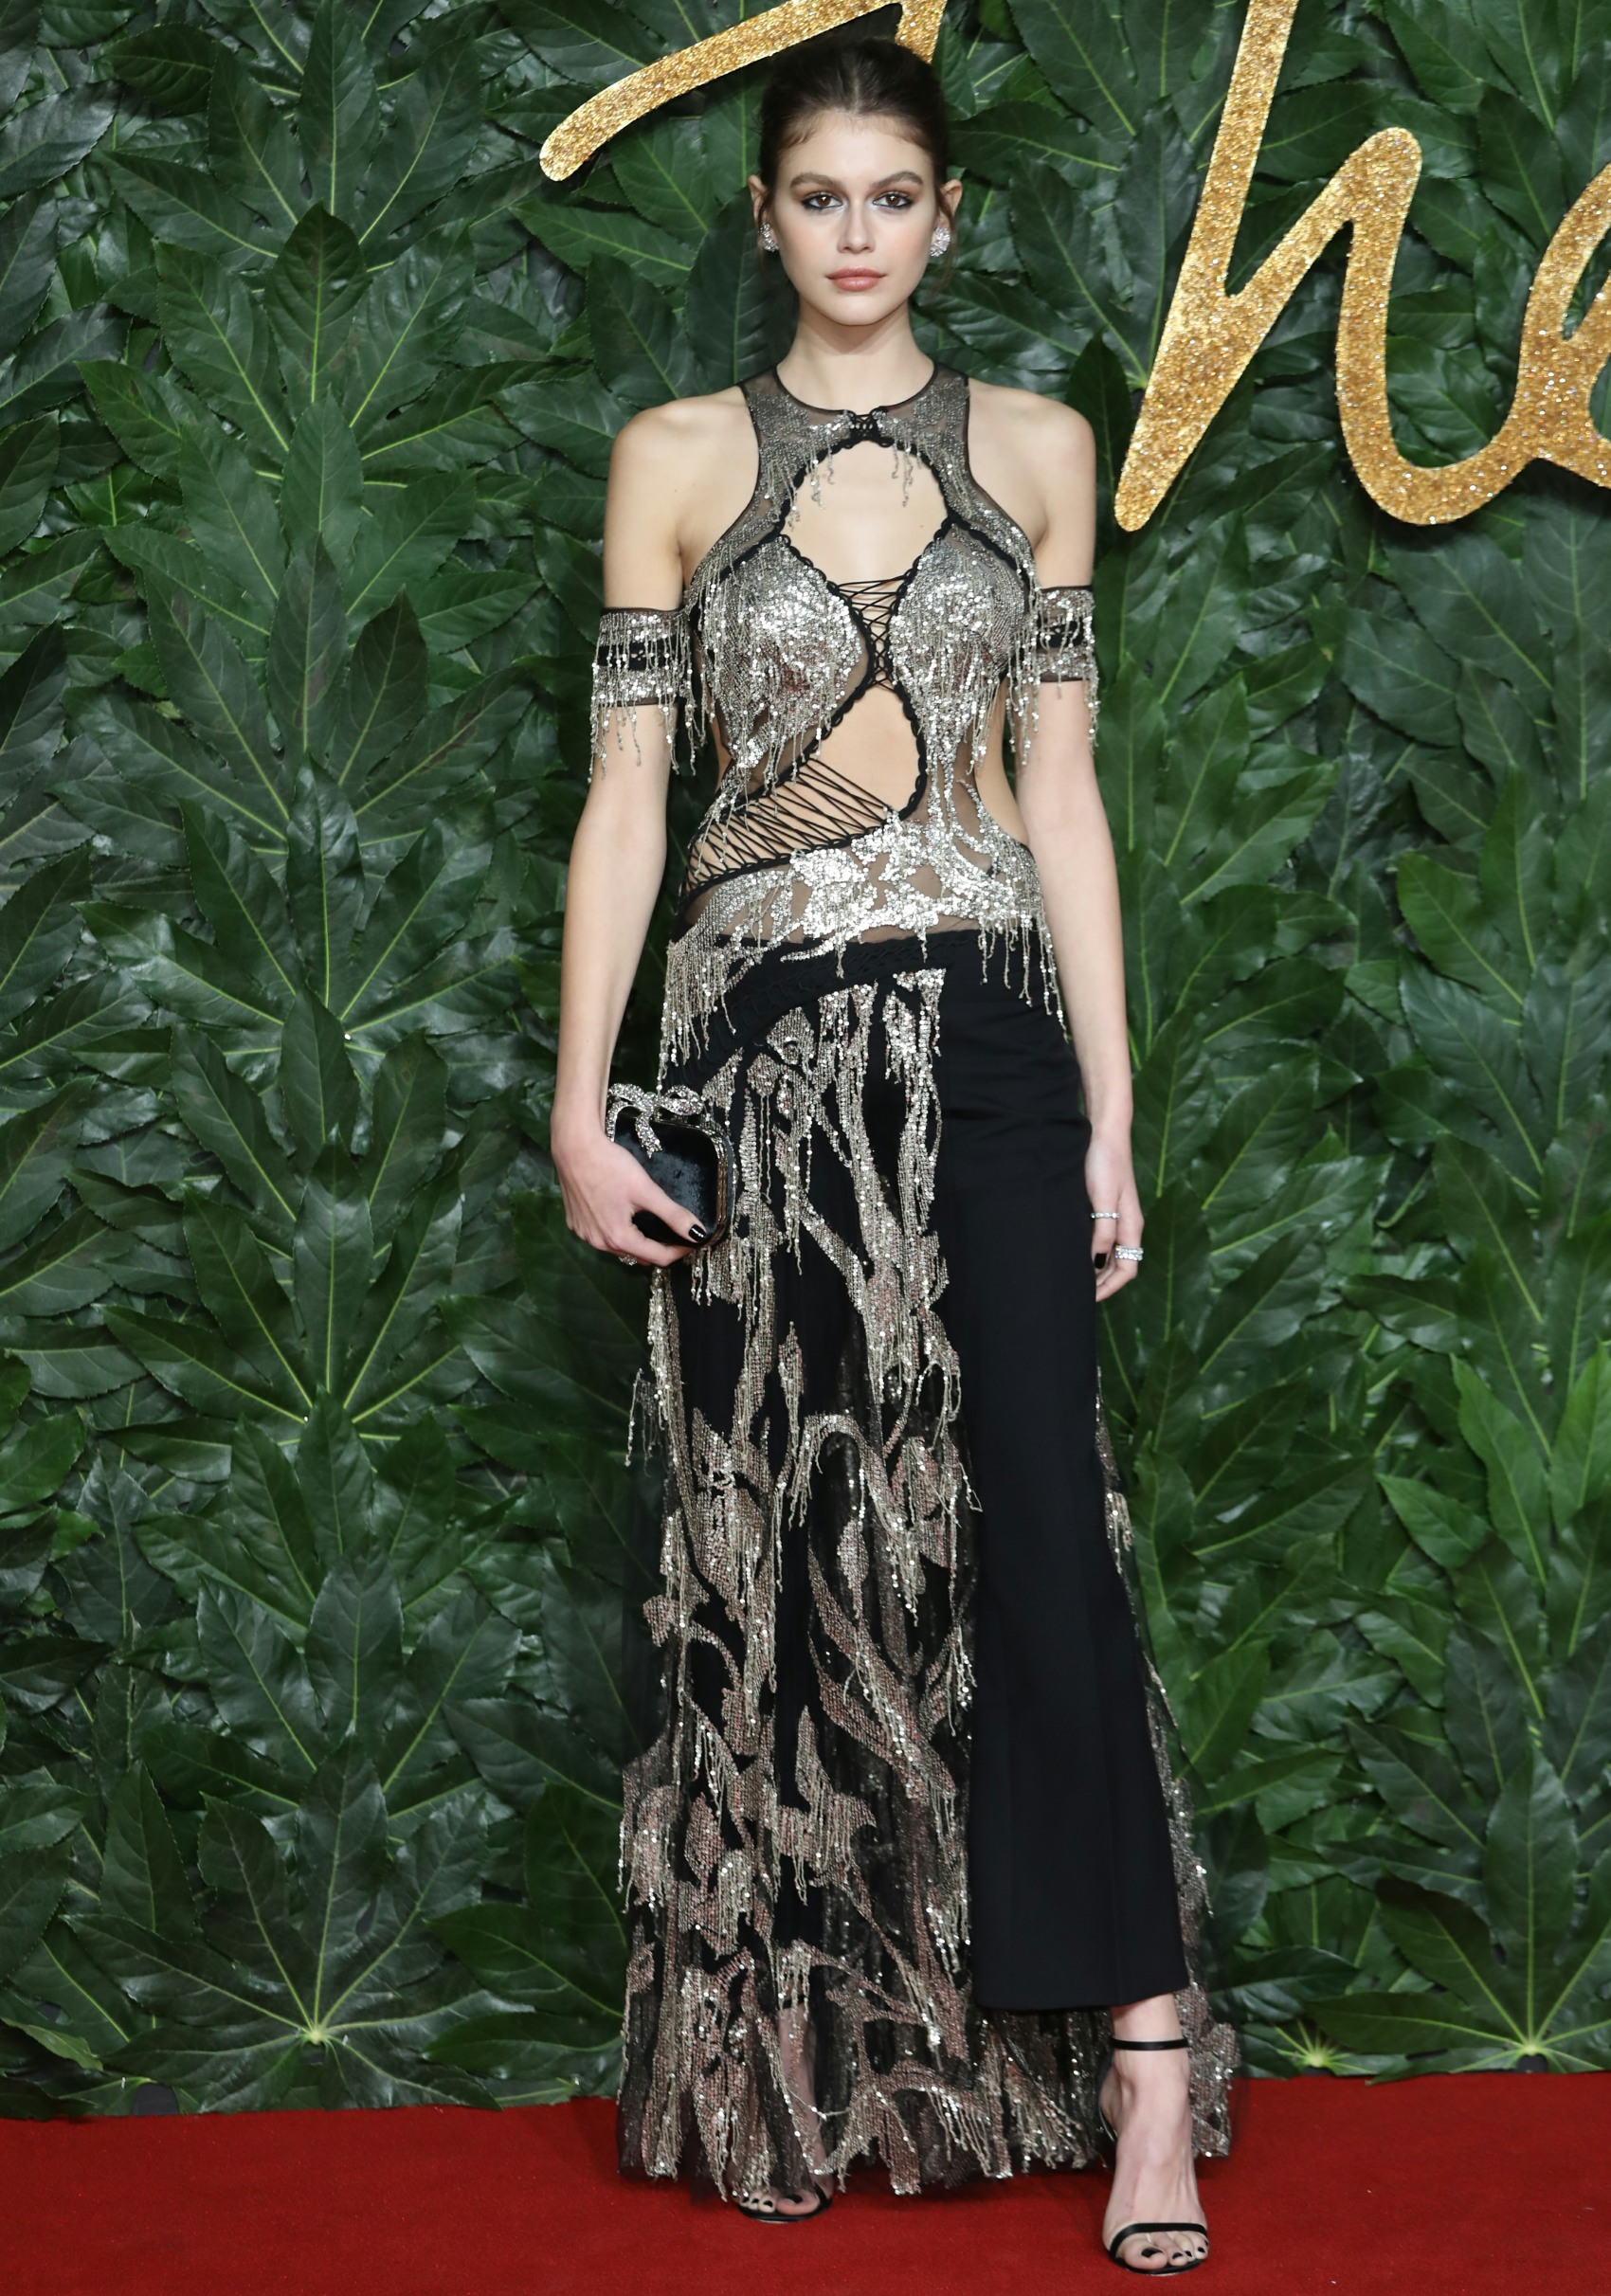 The British Fashion Awards 2018